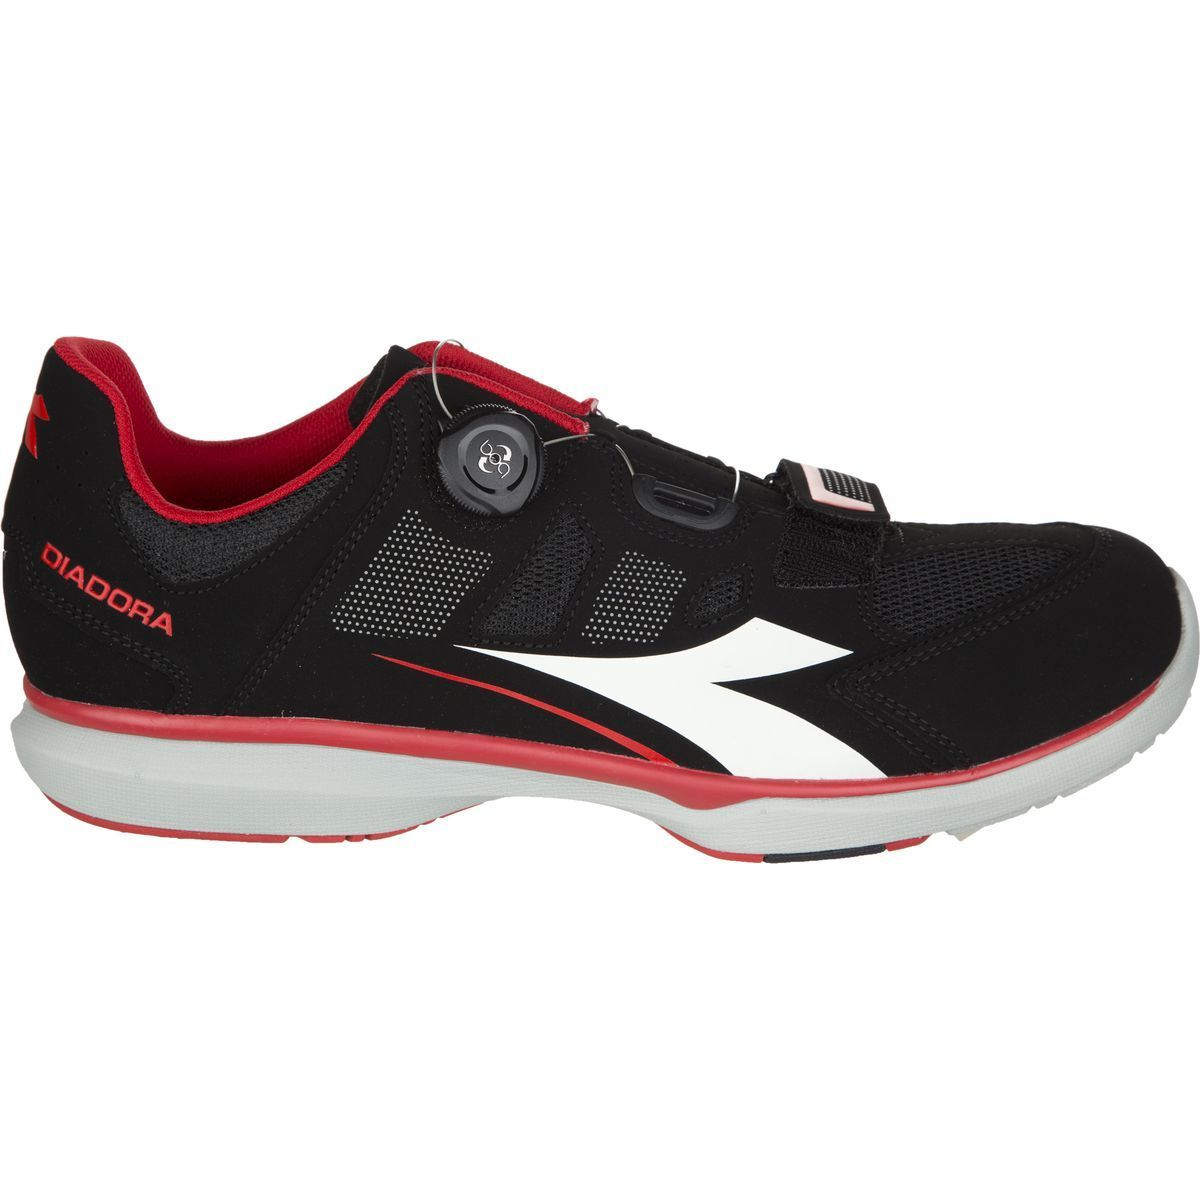 Mens Spinning Shoes